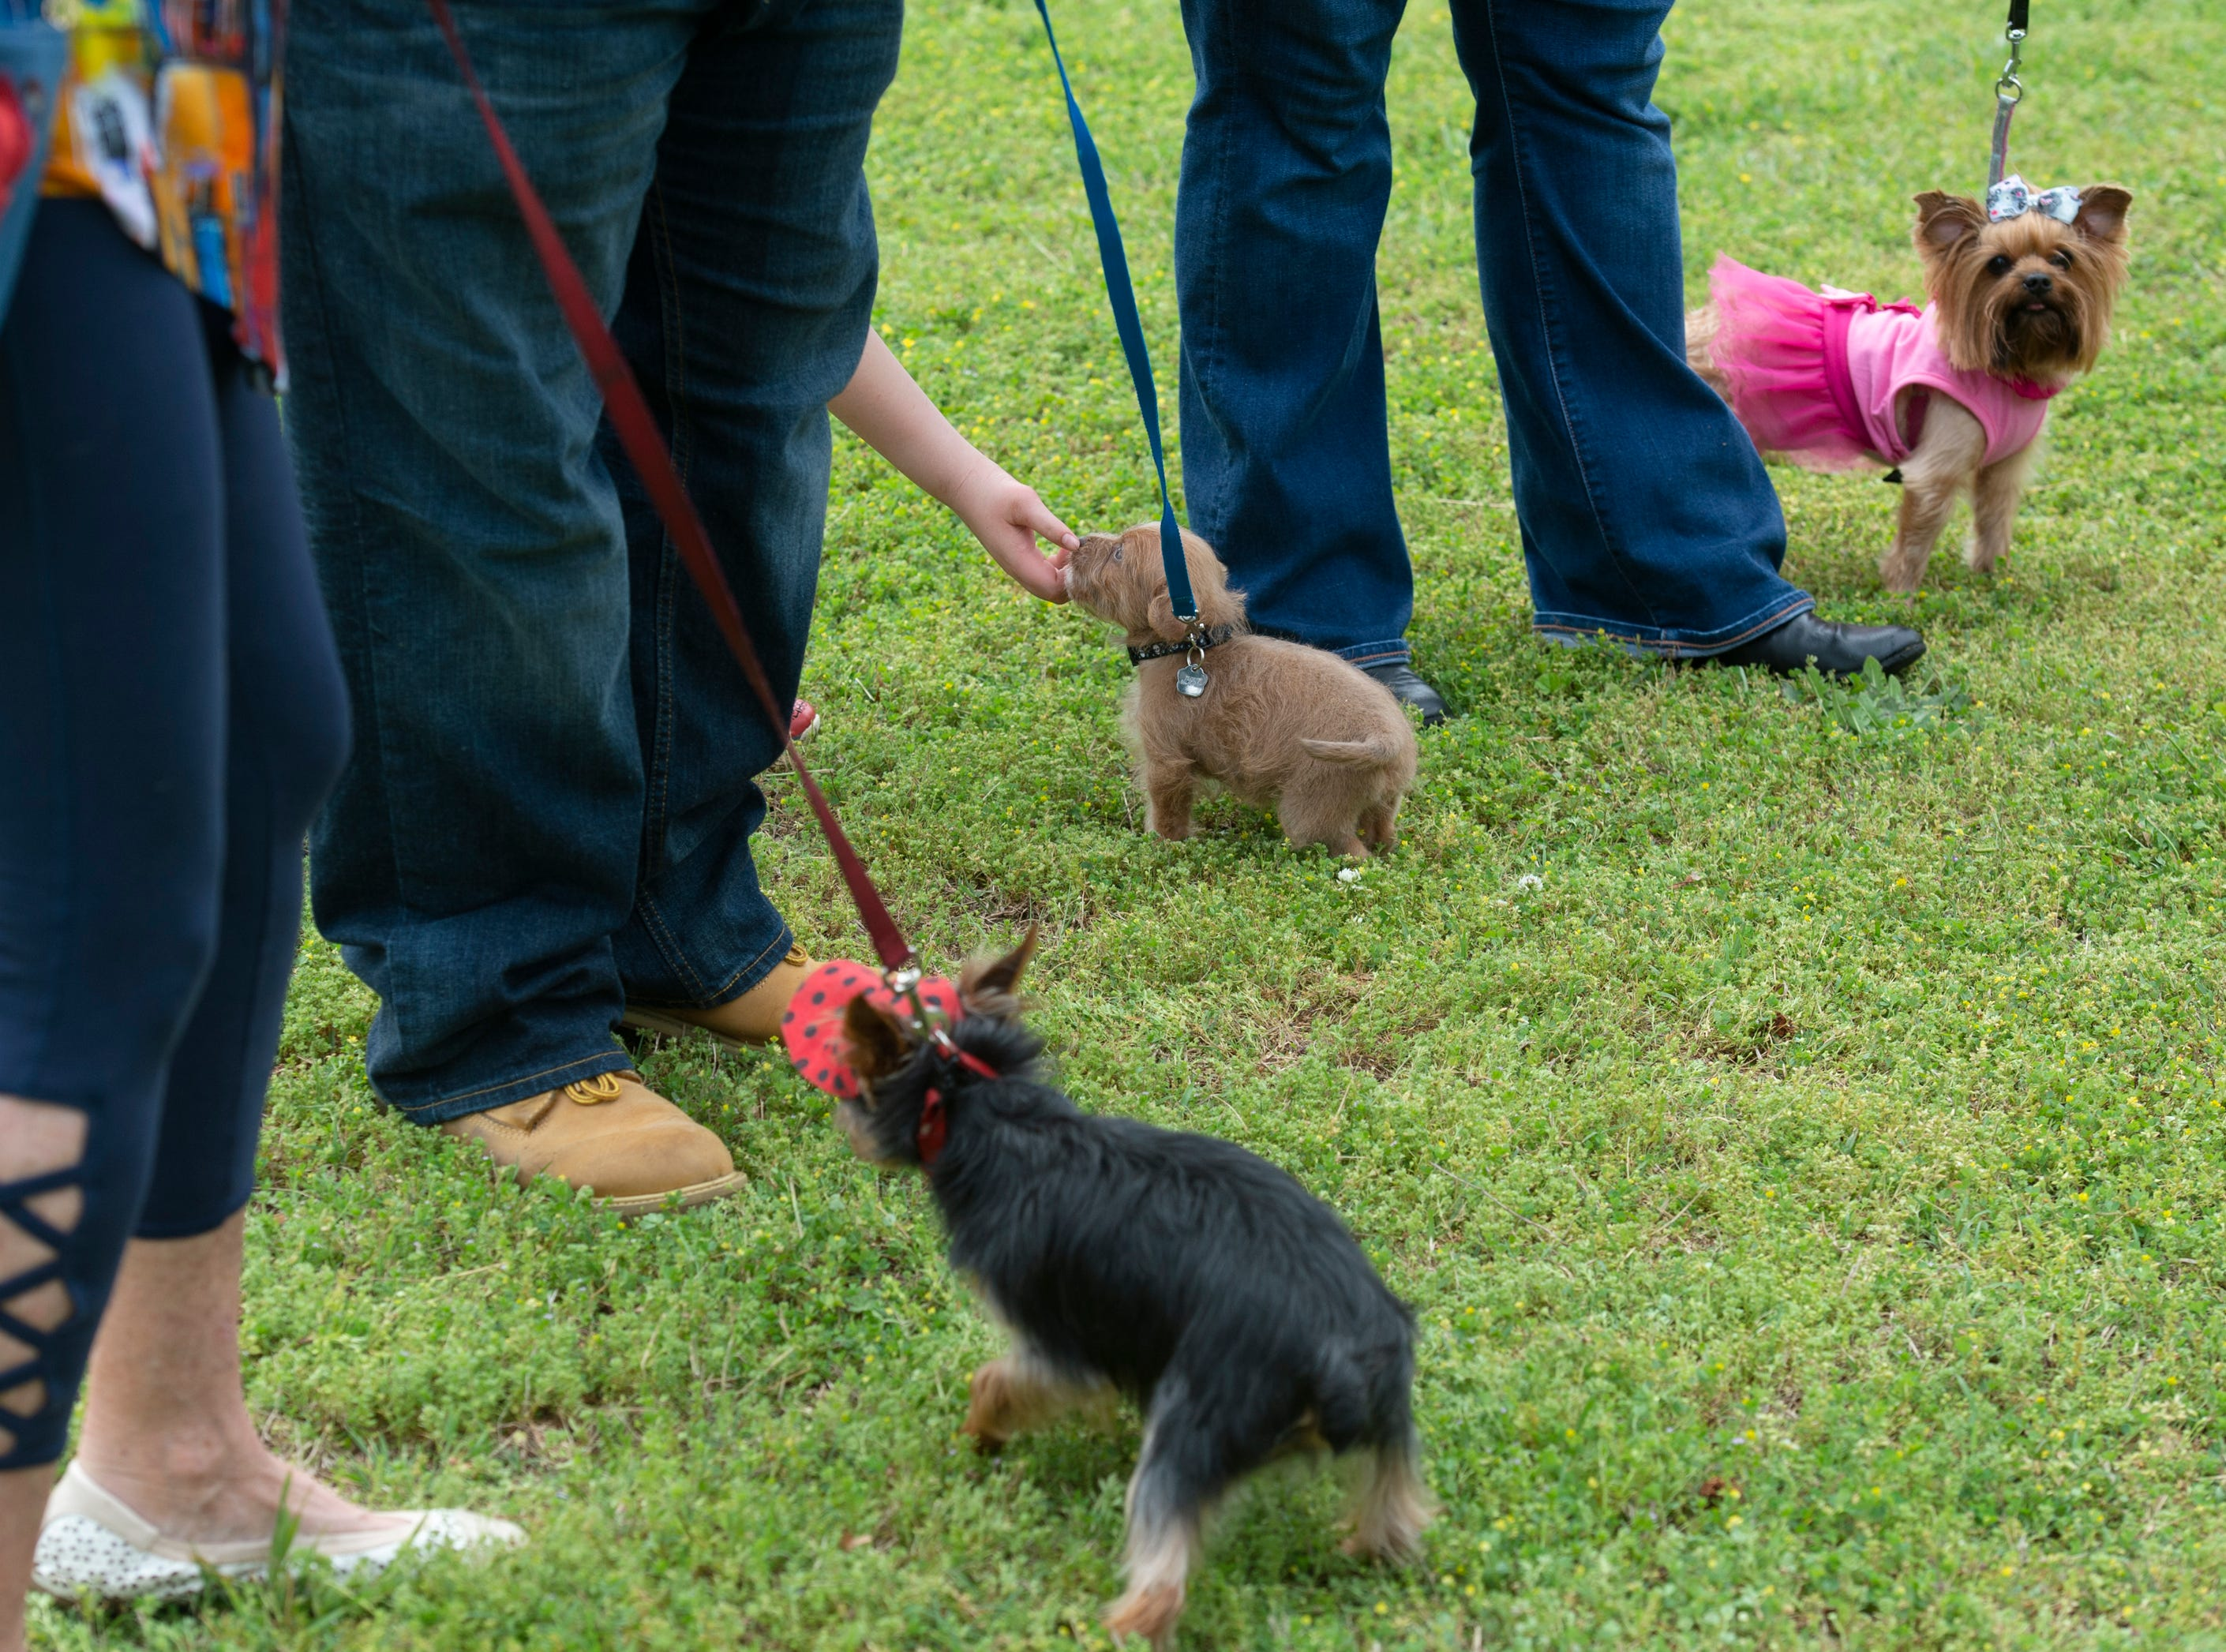 Dogs compete in the smallest dog category during Paws for a Cause held in Simpsonville City Park Saturday, April 13, 2019.